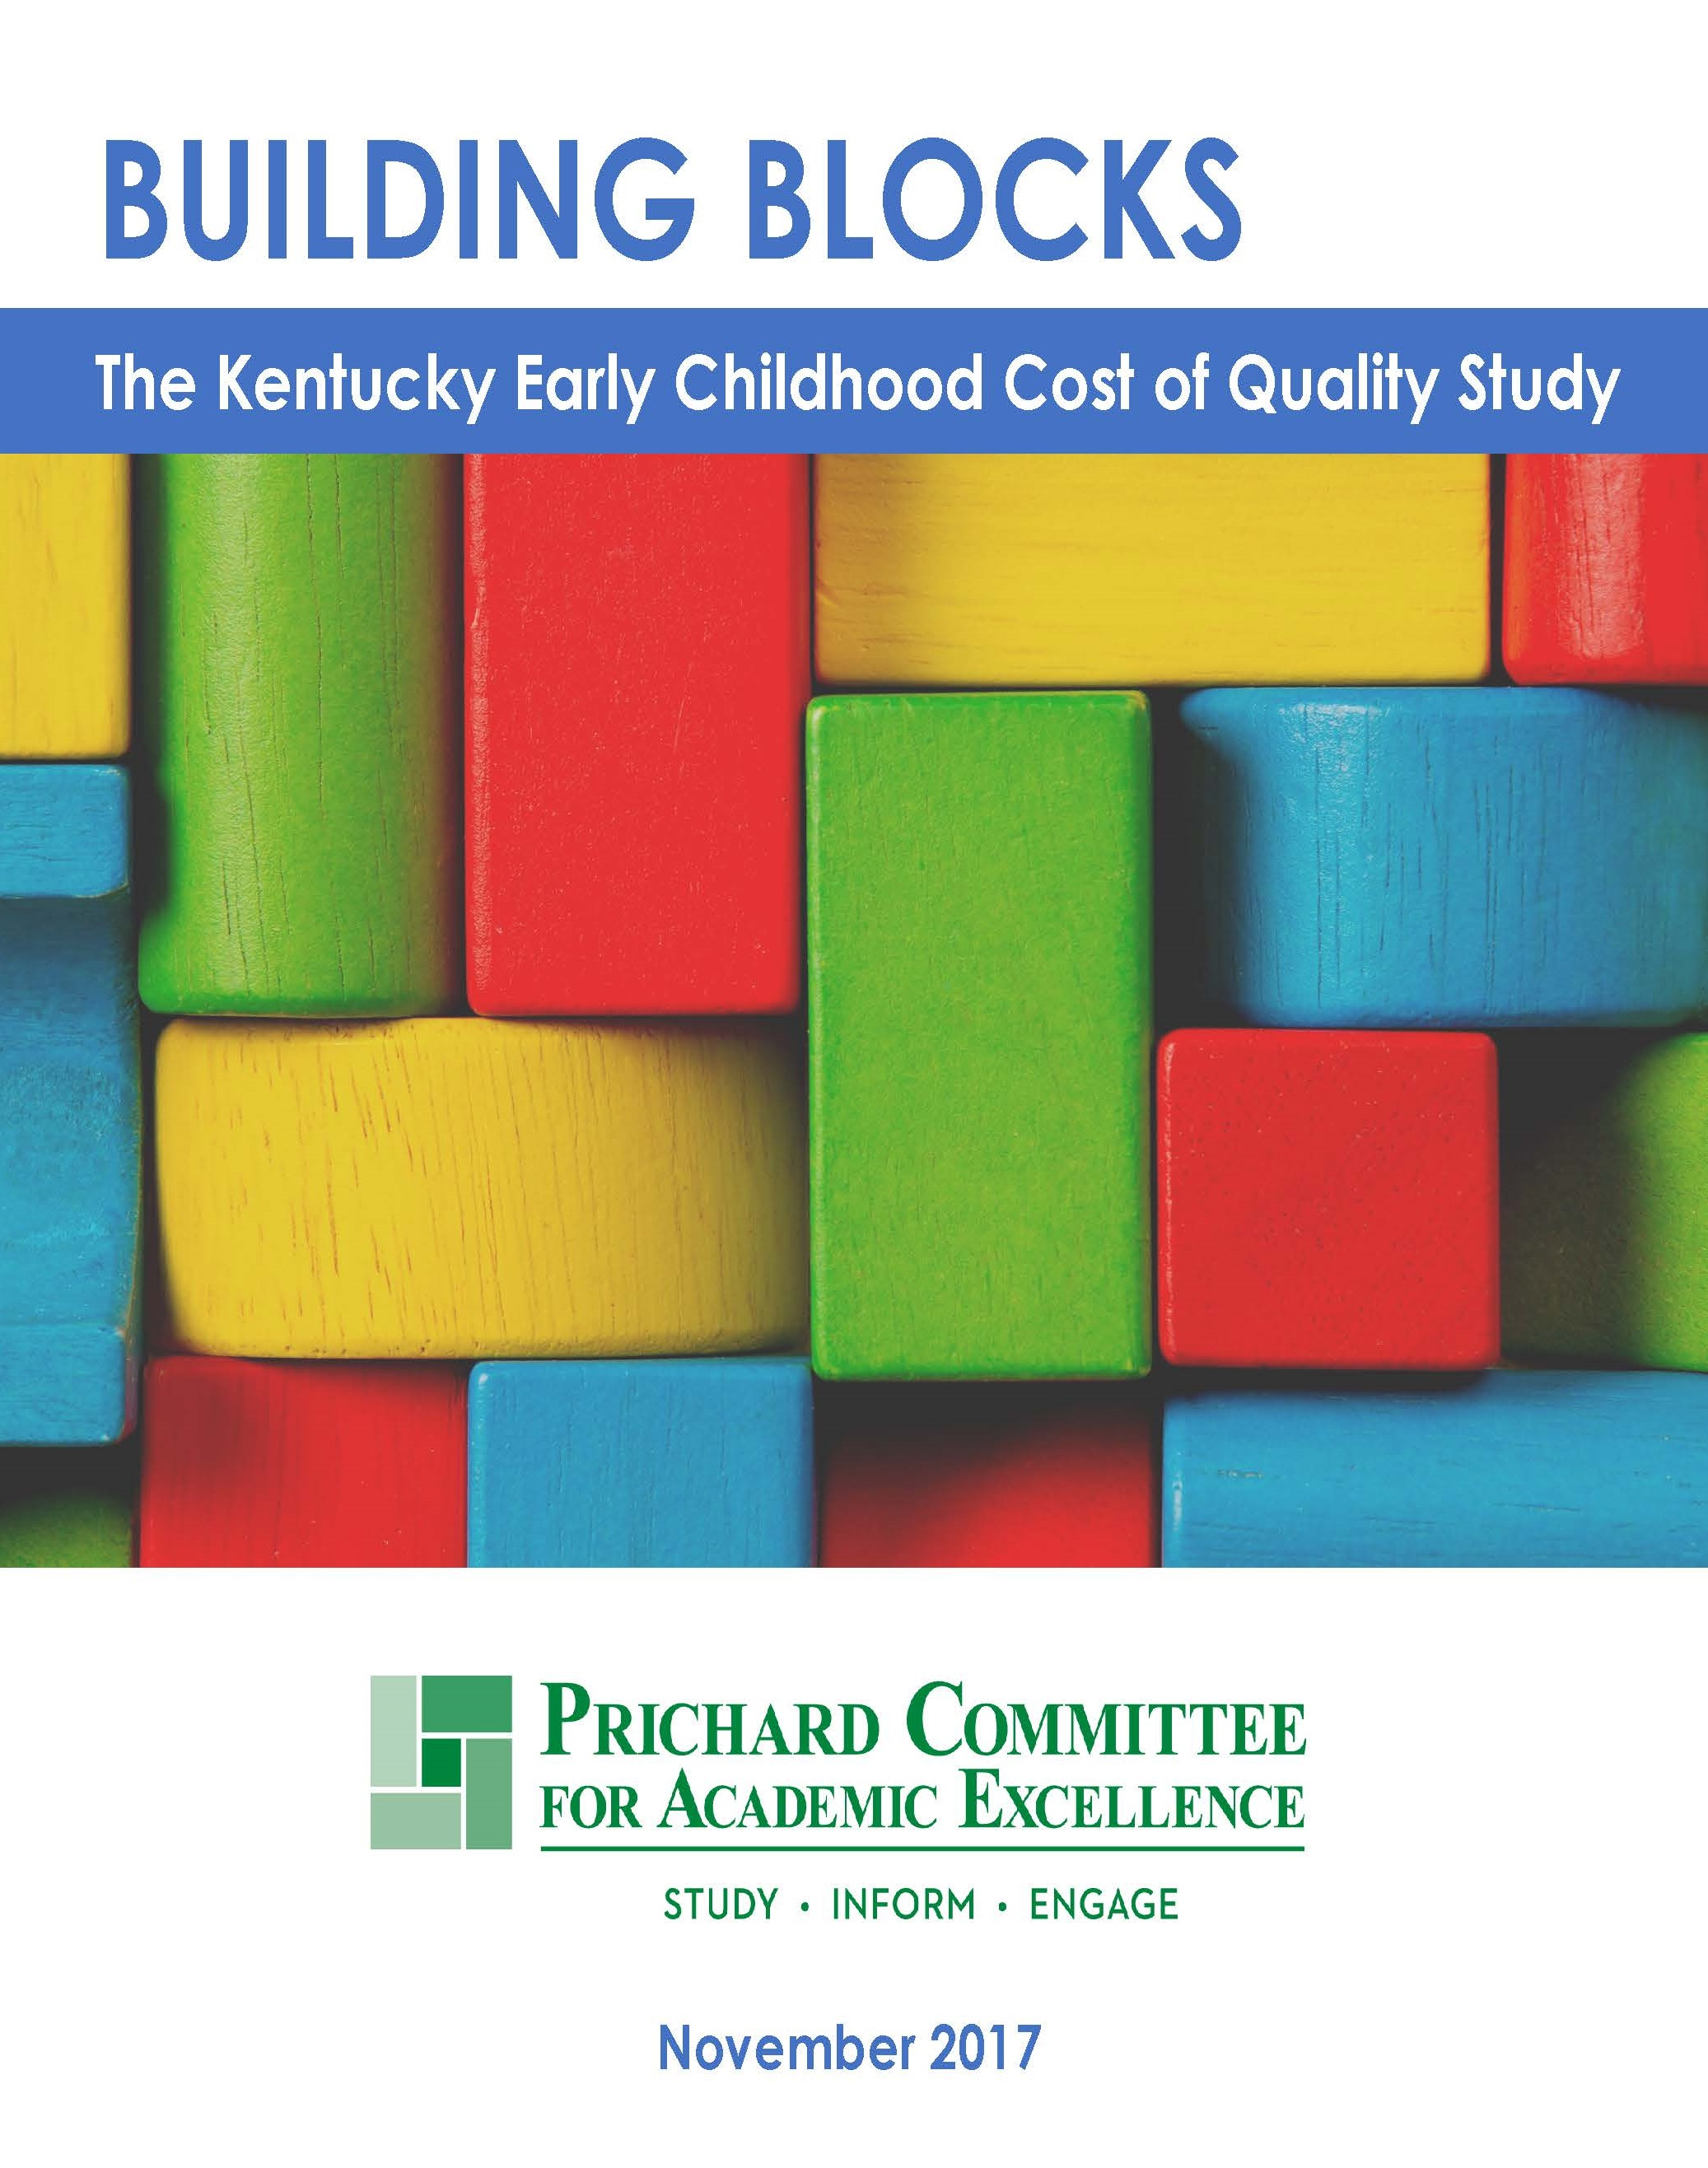 Study on Costs of Quality for Early Childhood Education Released